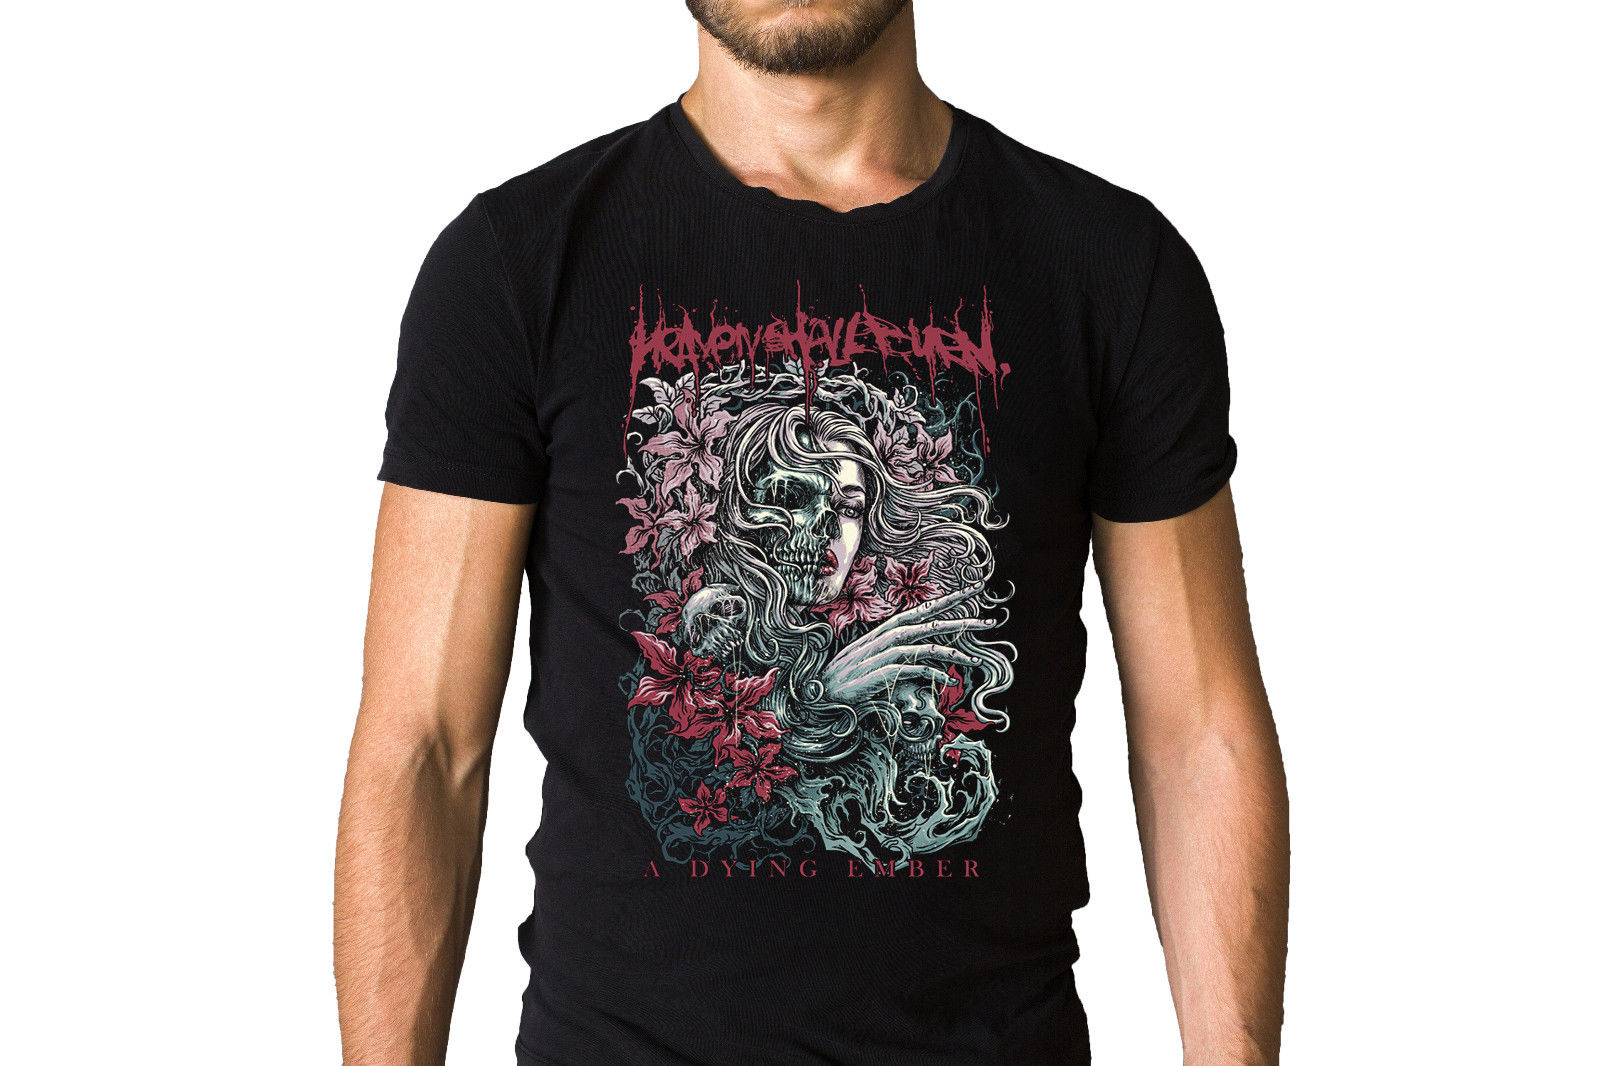 Heaven Shall Burn A Dying Ember Black T-Shirt Hip-Hop Simple Splicing Tee Tops Shirt Summer Short Sleeves Cotton T Shirt Top Tee